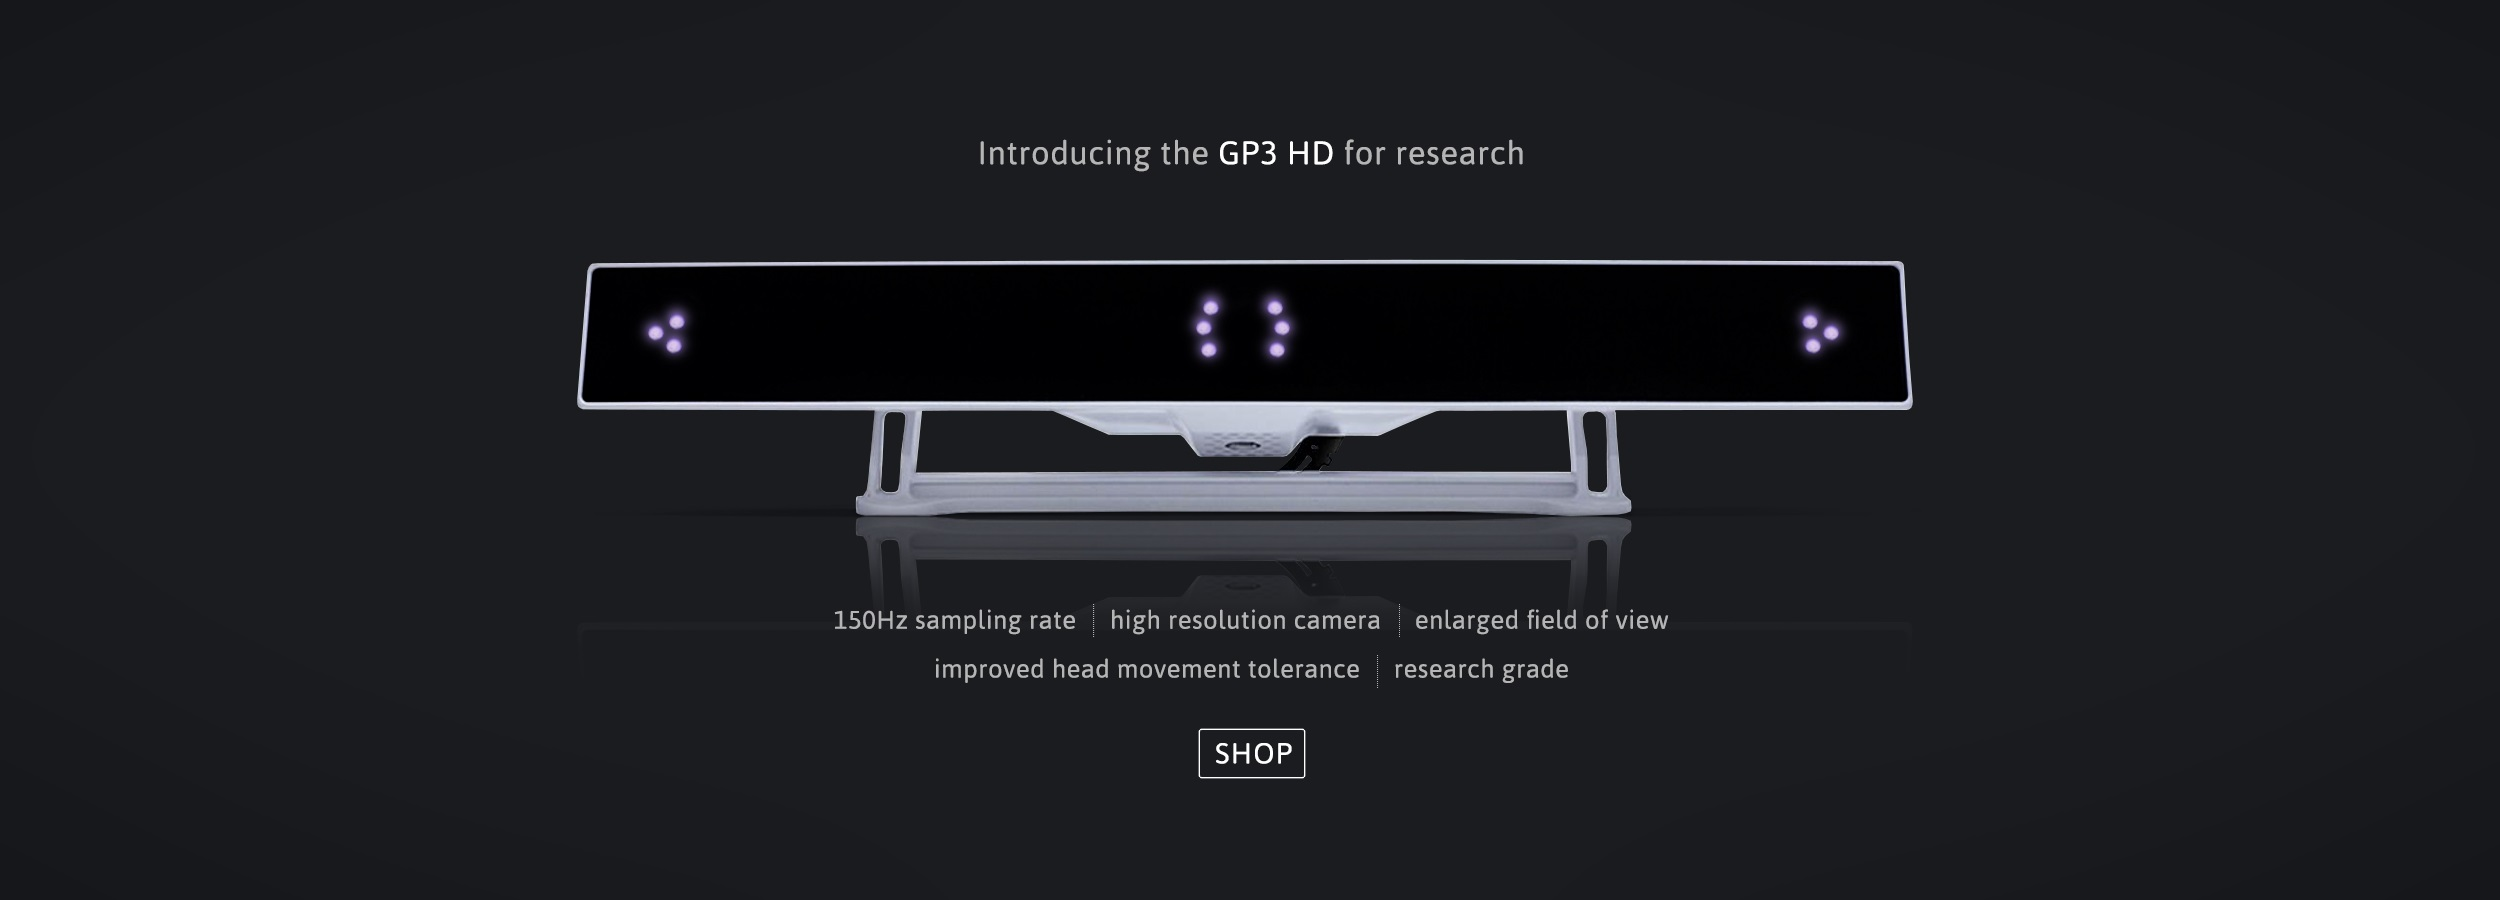 Gazepoint GP3 HD